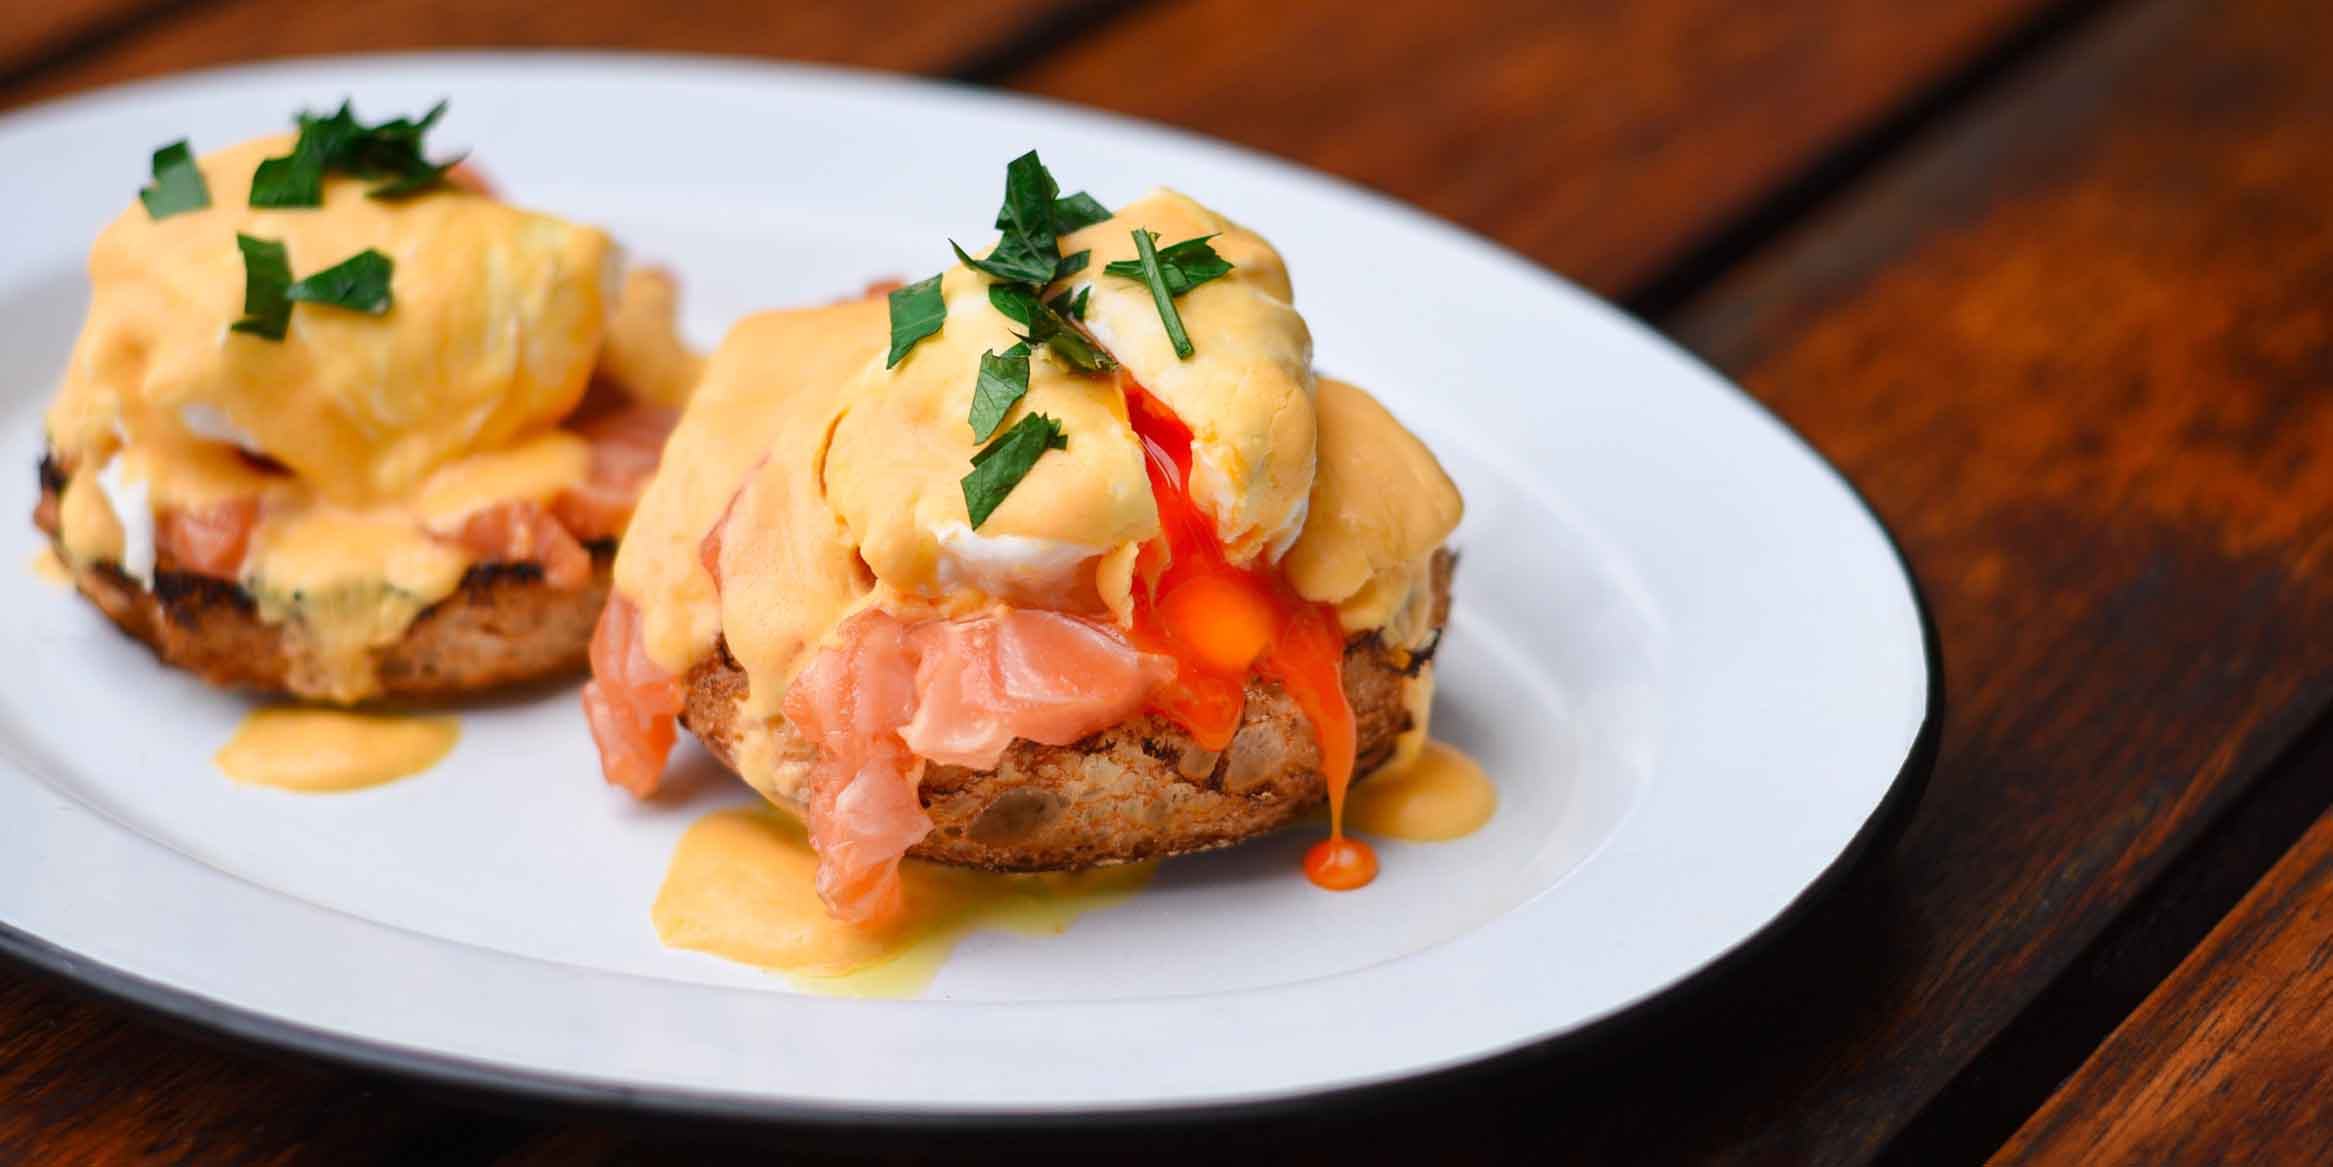 Benedict of Beef & Liberty (Kerry Parkside) located in Pudong, Shanghai